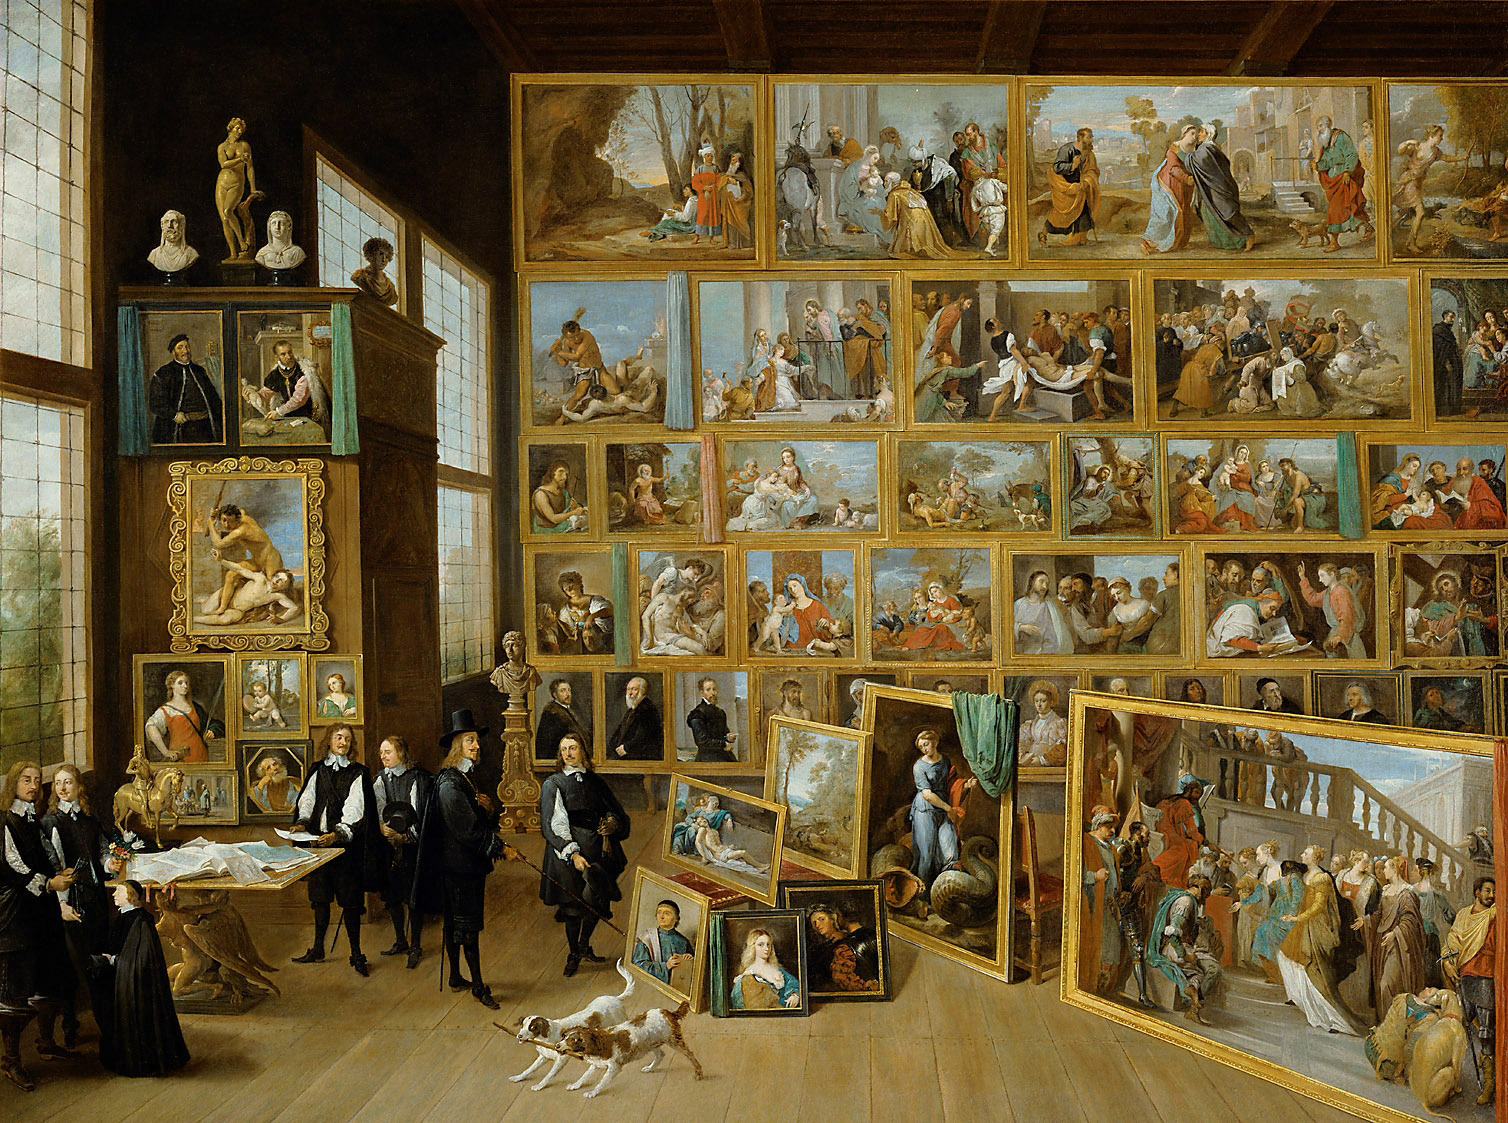 https://upload.wikimedia.org/wikipedia/commons/4/4e/David_Teniers_d._J._008.jpg